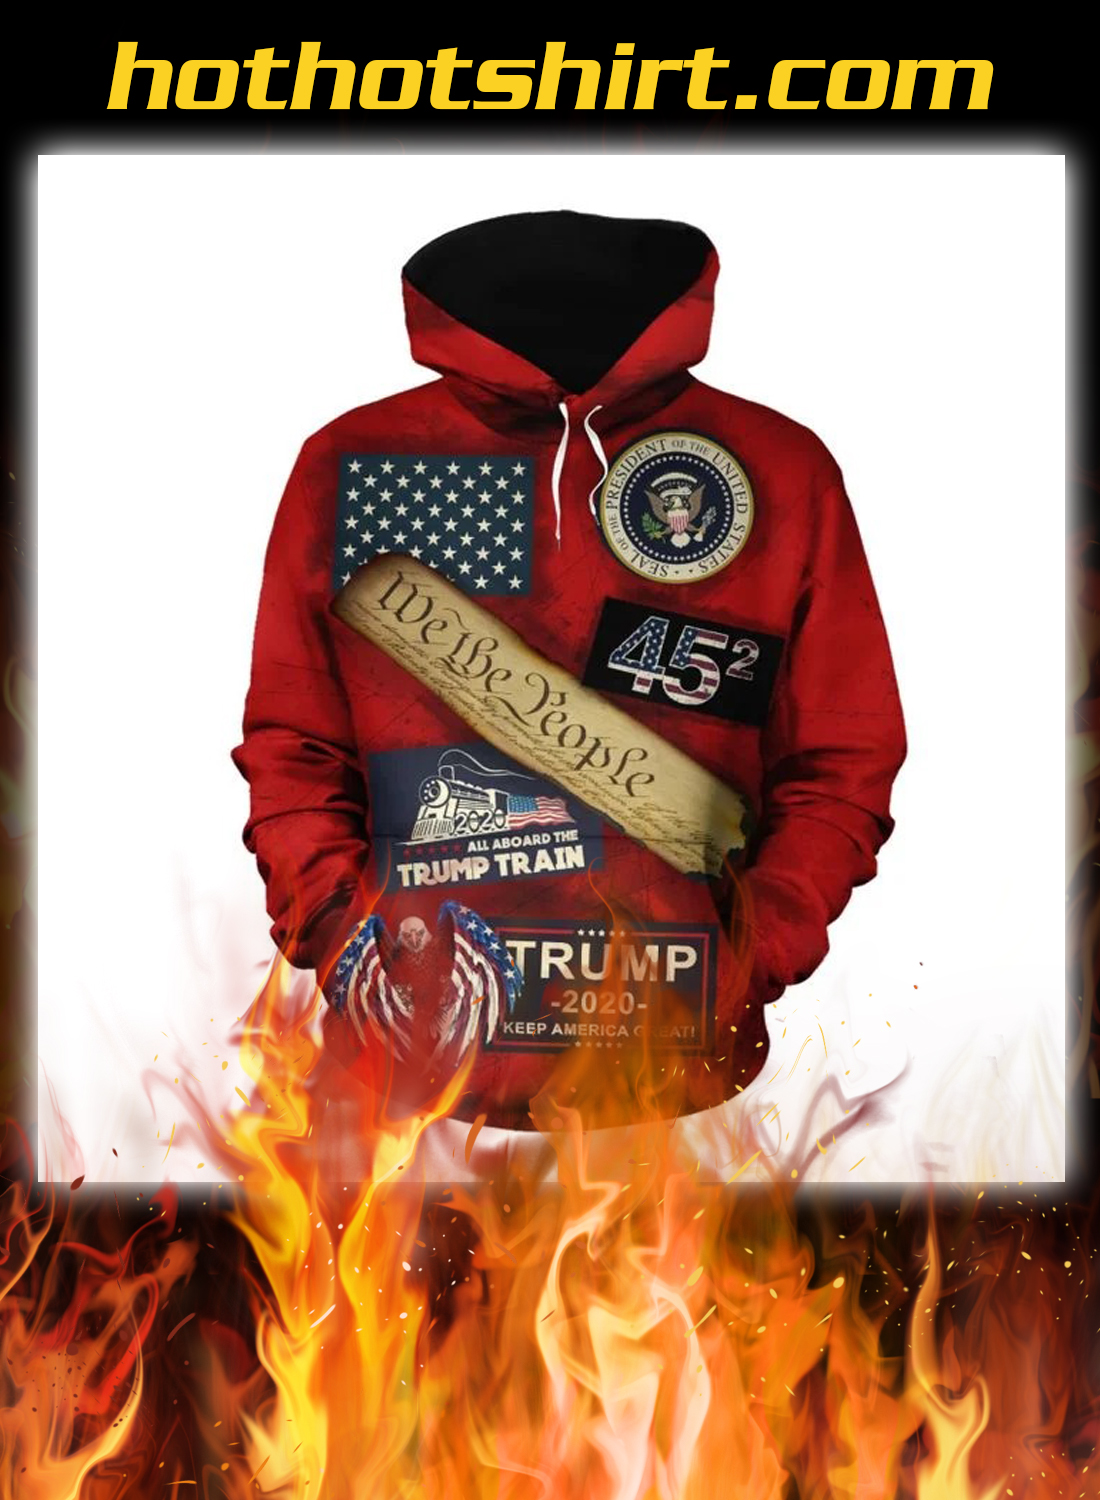 Trump maga we the people all aboard the trump train 3d all over hoodie 1